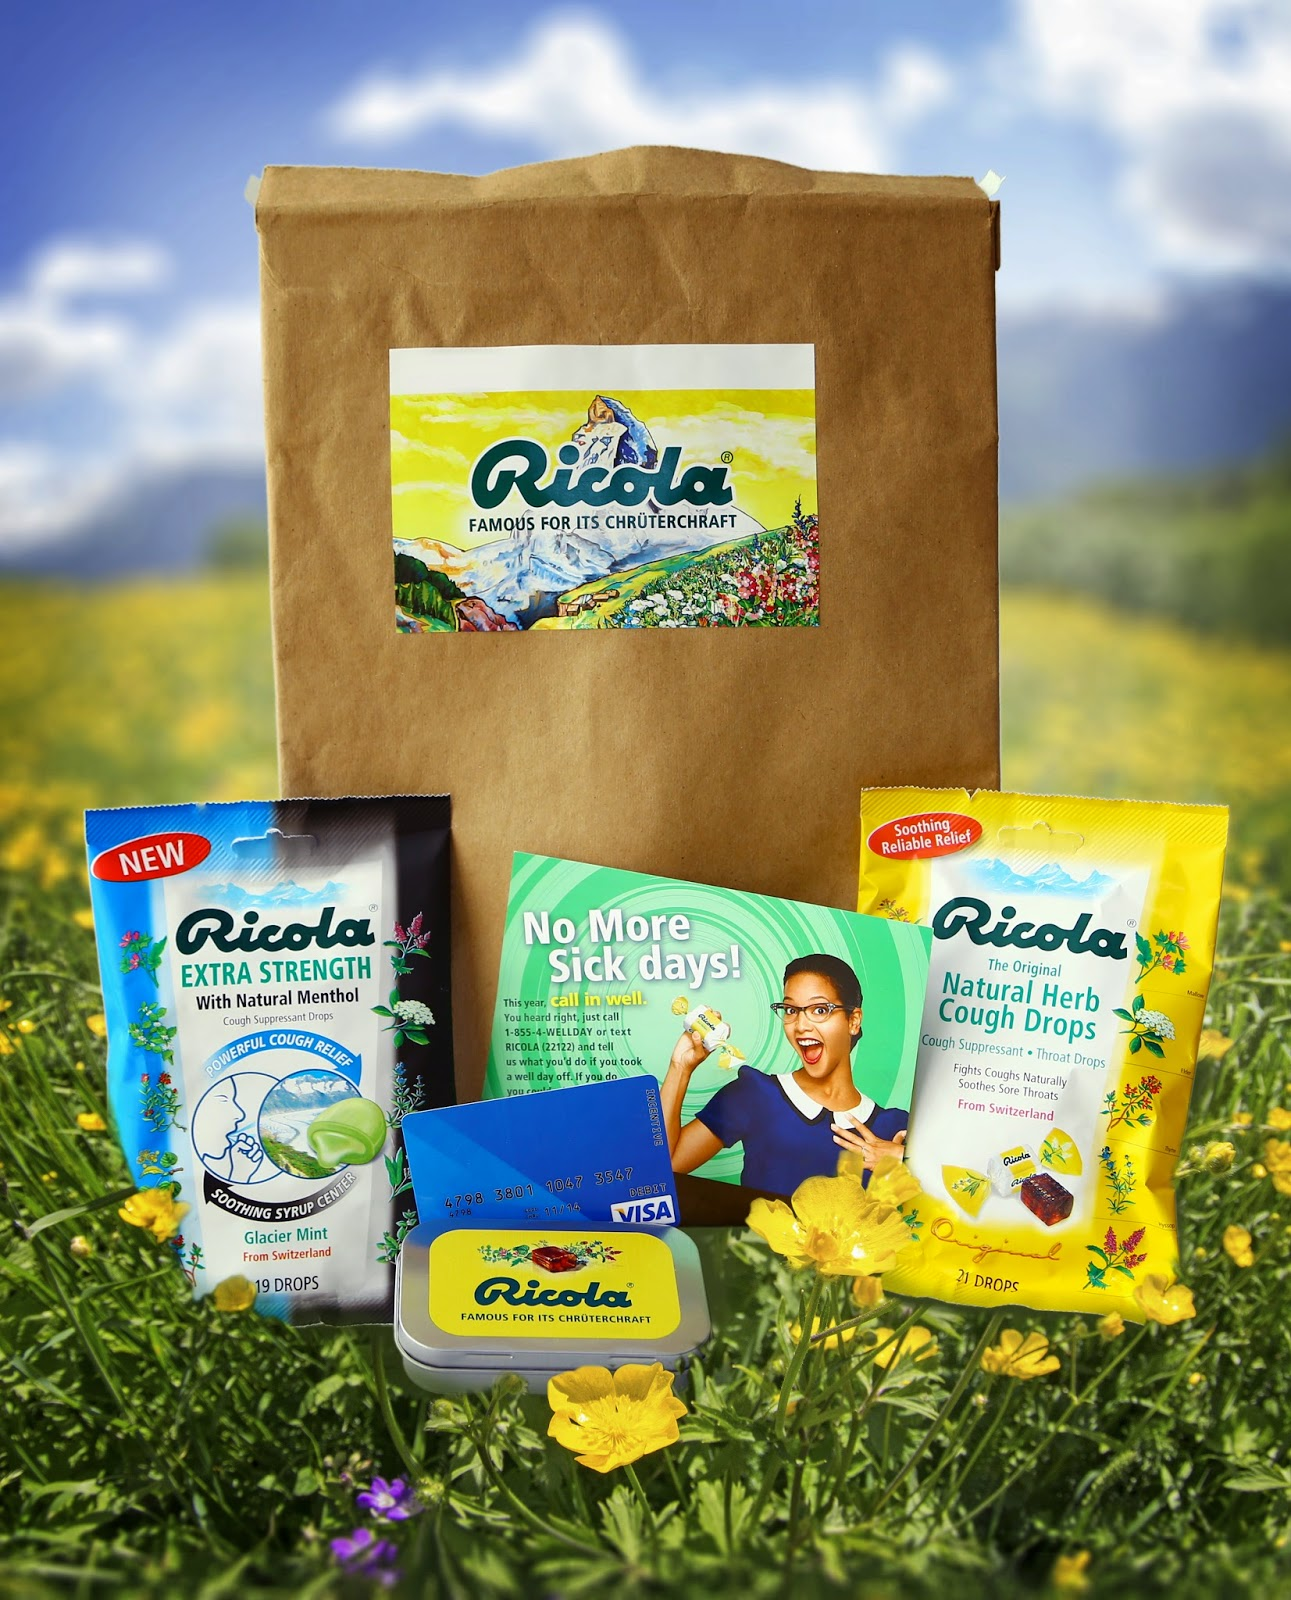 Ricola and Visa GC giveaway